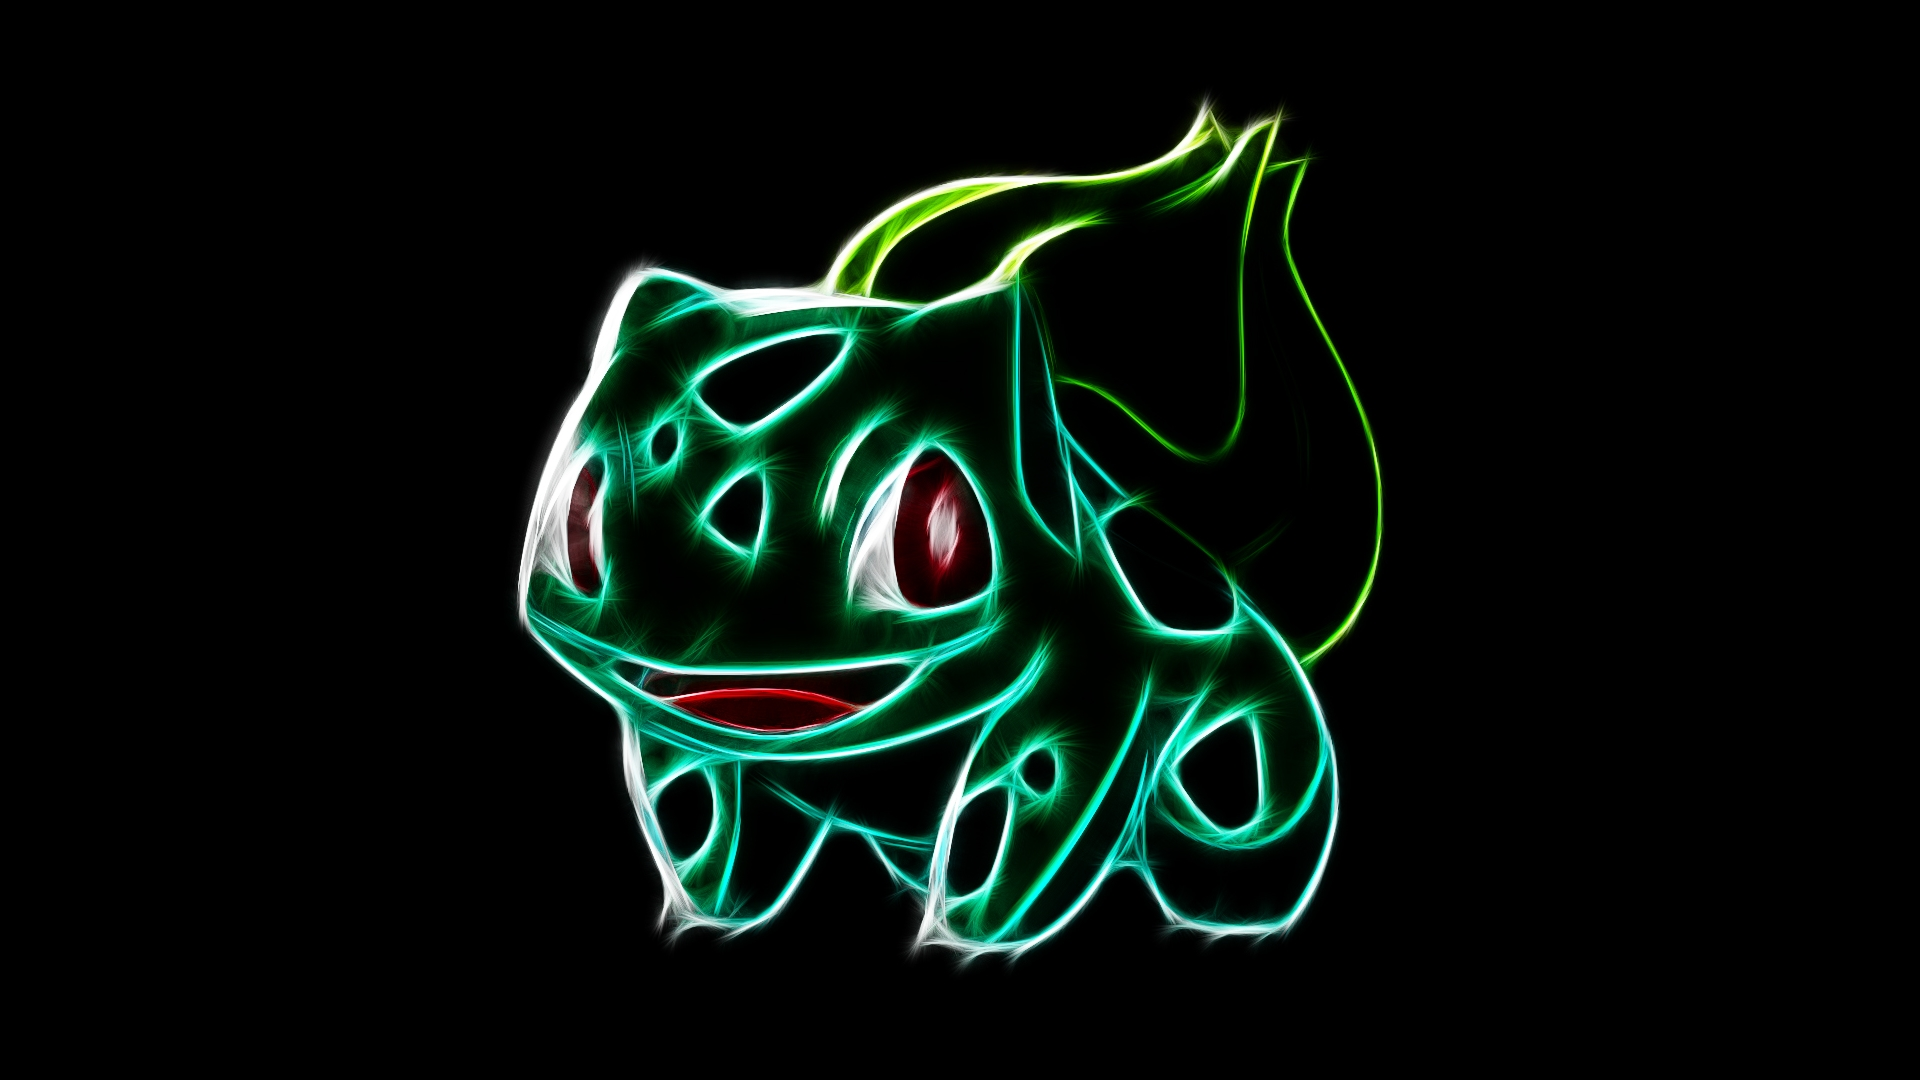 bulbasaur evolution wallpaper images - photo #3